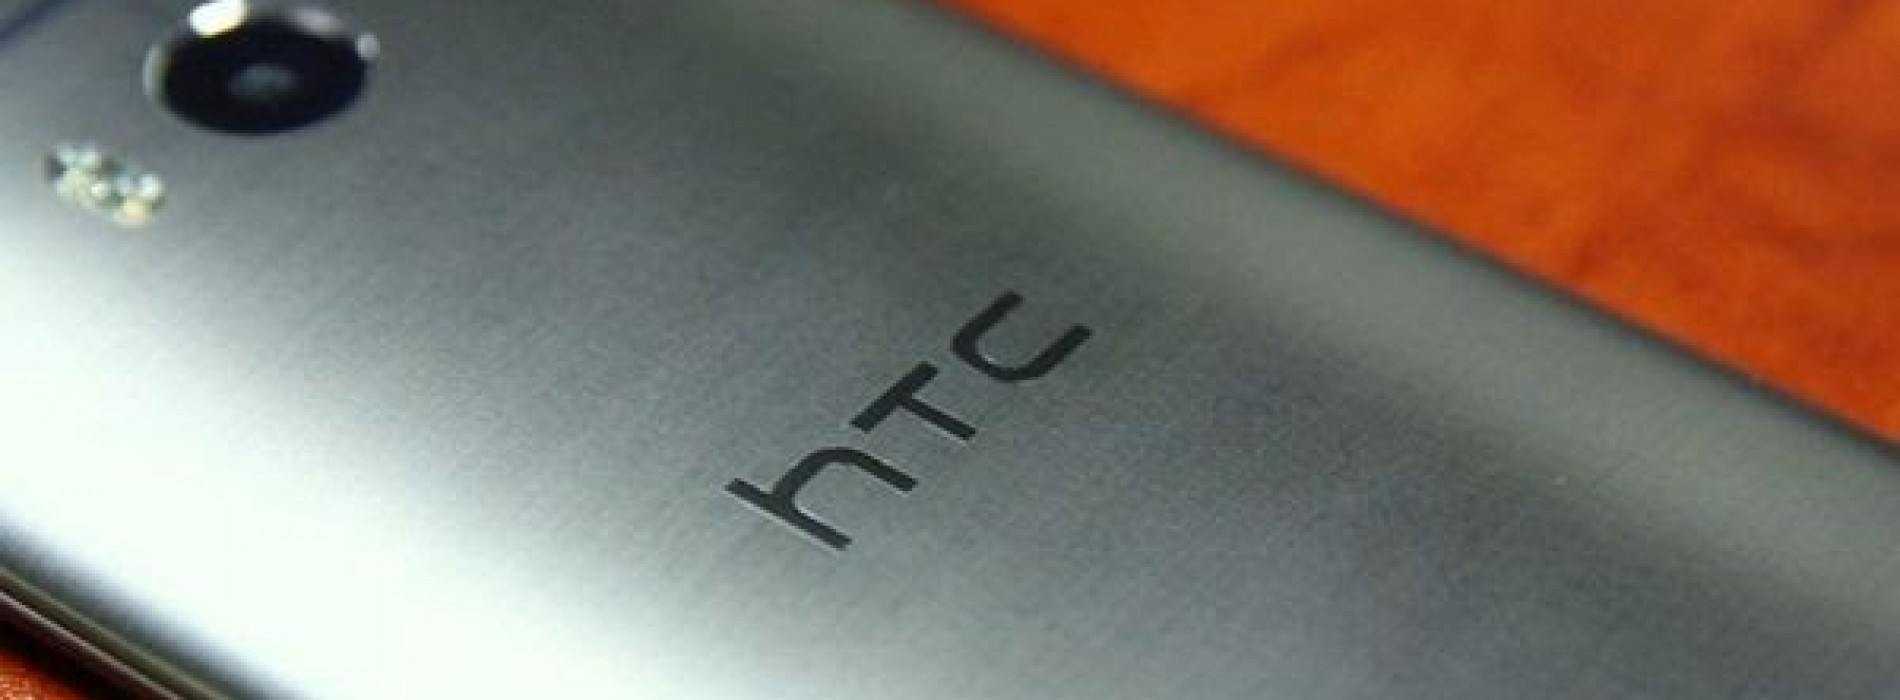 HTC One M8 Max could boast Snapdragon 805, 5.9-inch display